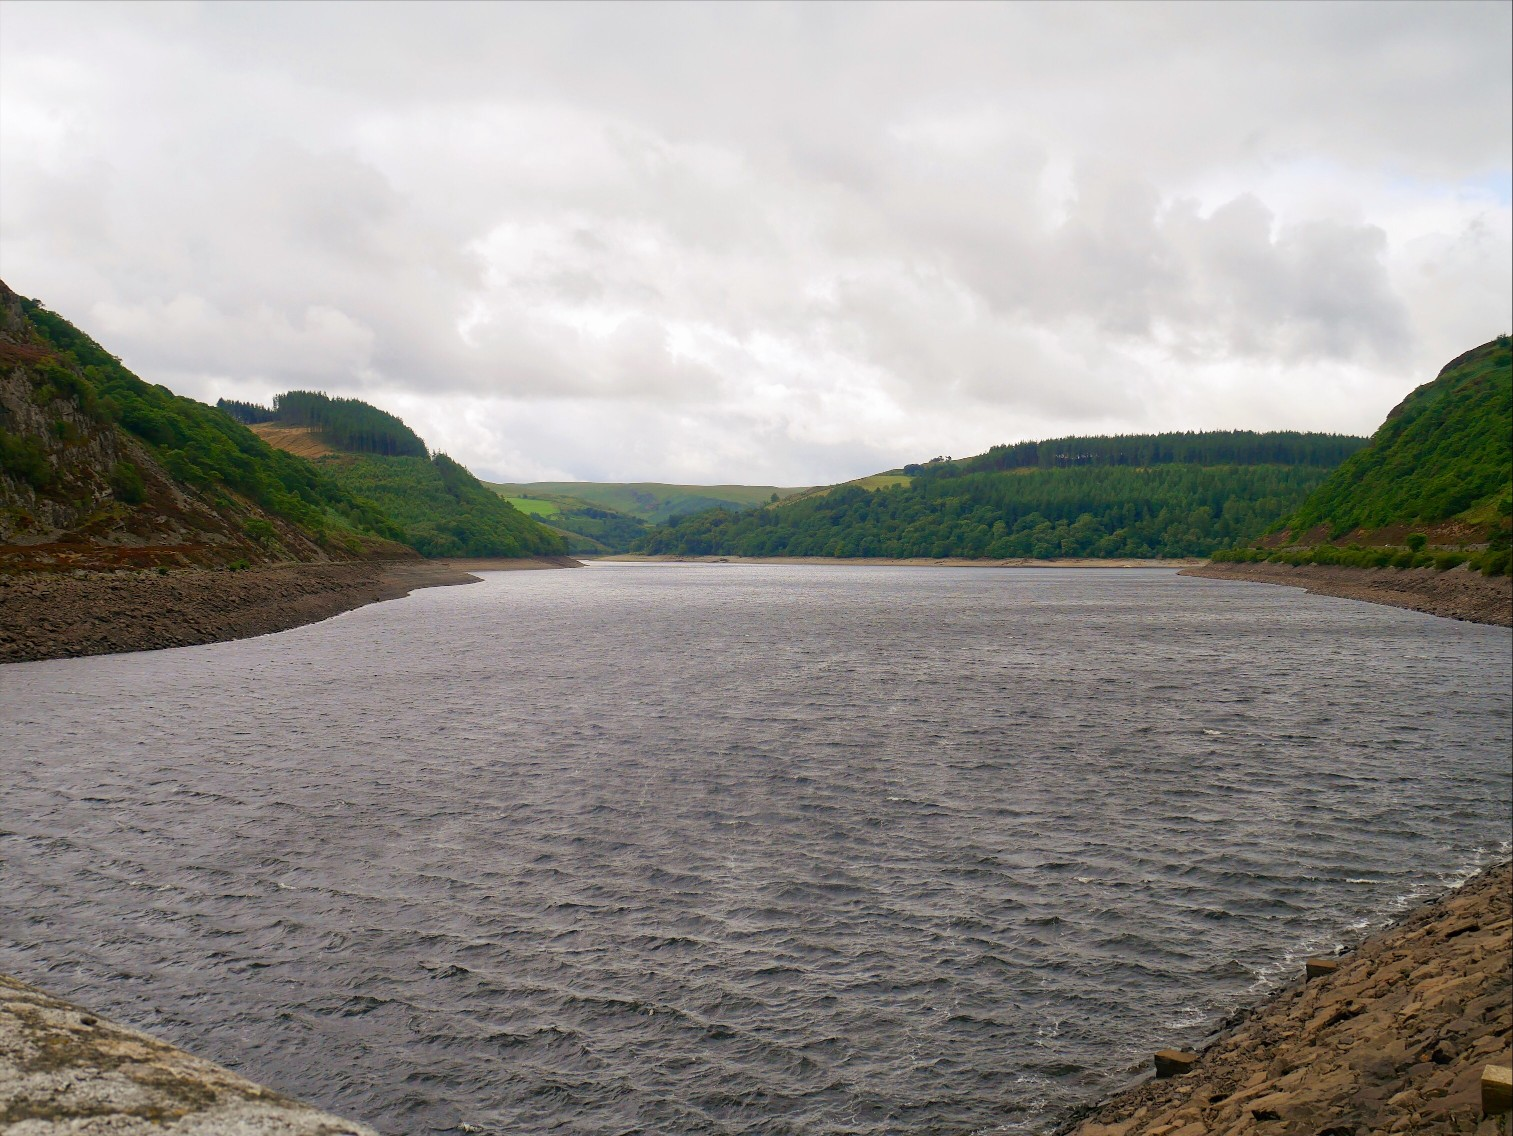 Landscape view of The Elan Valley